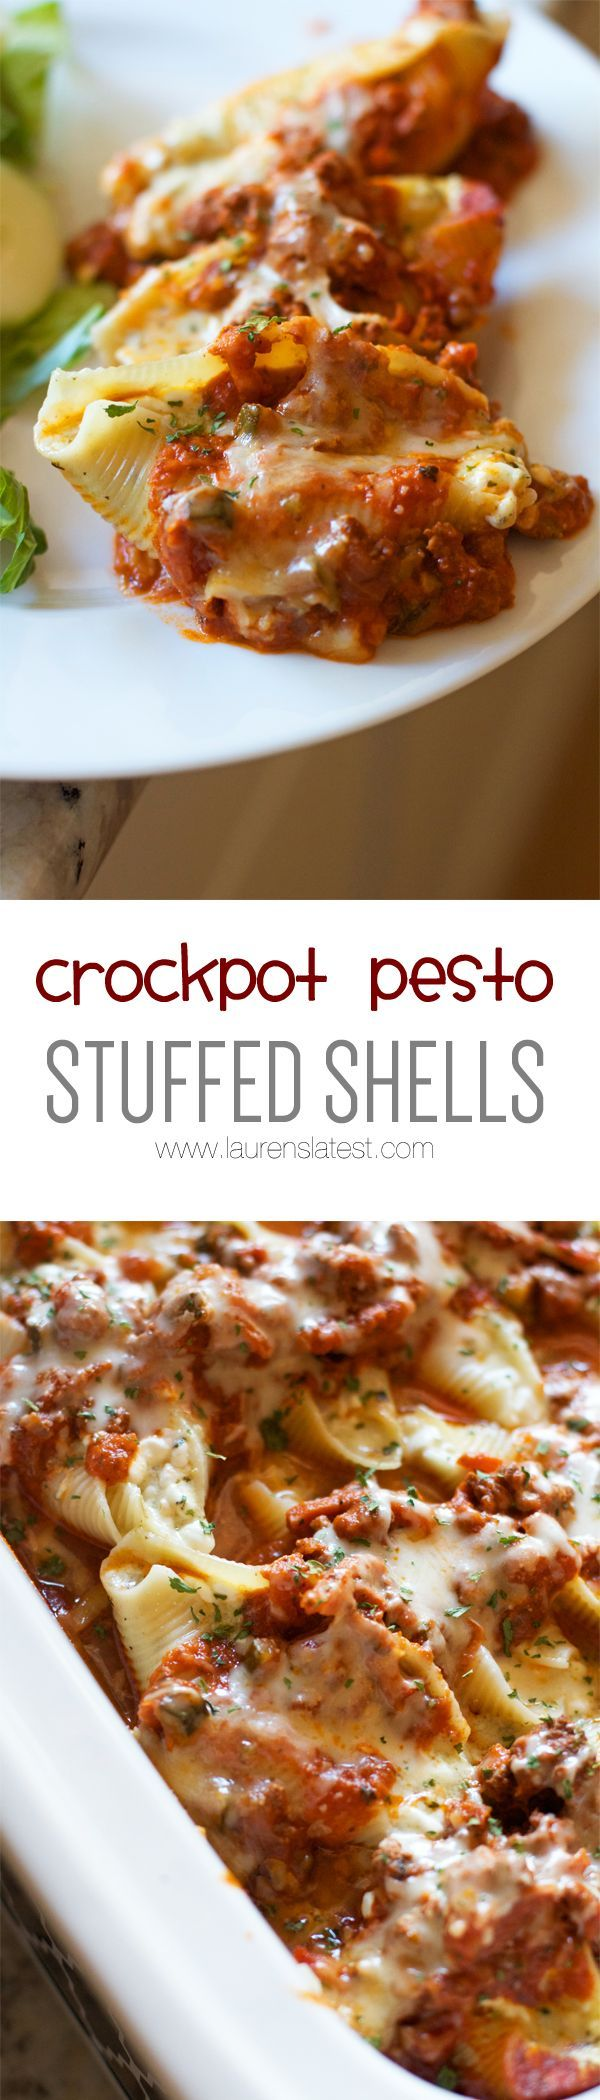 Crockpot Pesto Stuffed Shells....3 cheeses + pesto is the way to go. These look amazing.